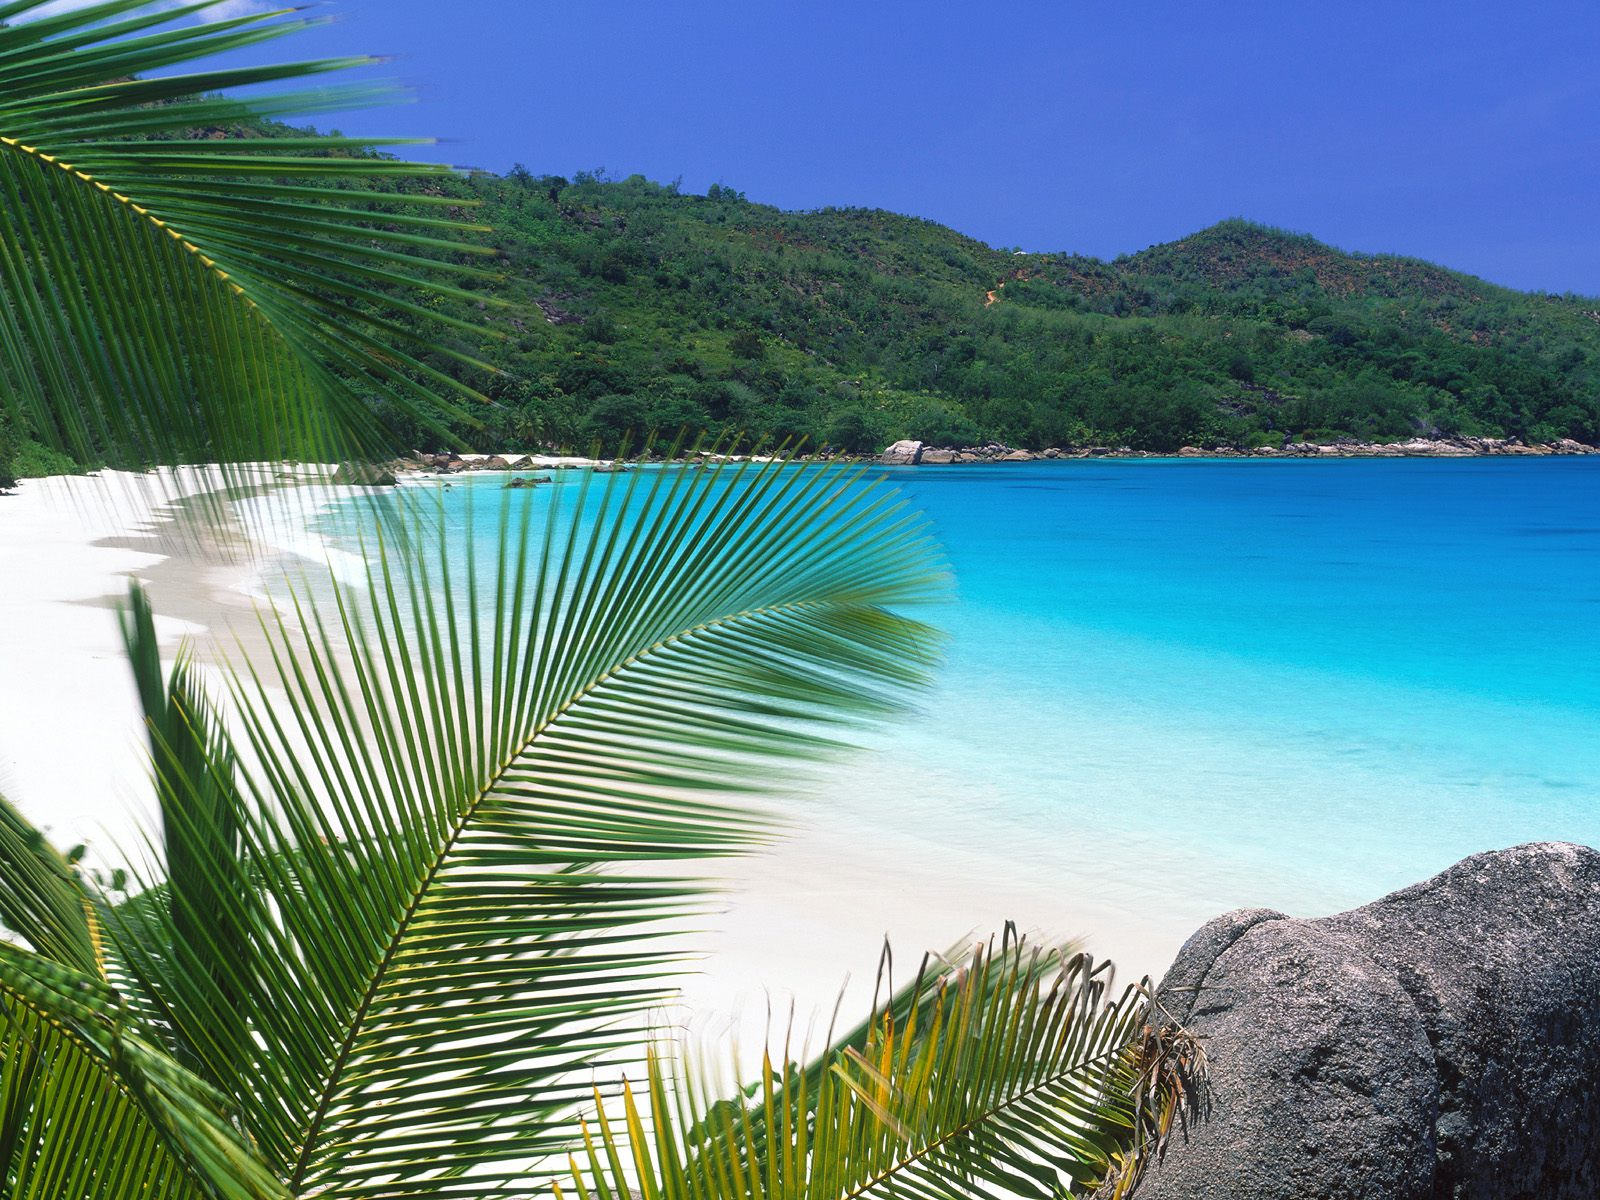 http://4.bp.blogspot.com/_6vQUmqm2JkQ/TTvsW72O_5I/AAAAAAAAHwk/nU40MRjTVHM/s1600/photos-of-Tropical-Retreat-Seychelles-pictures.jpg